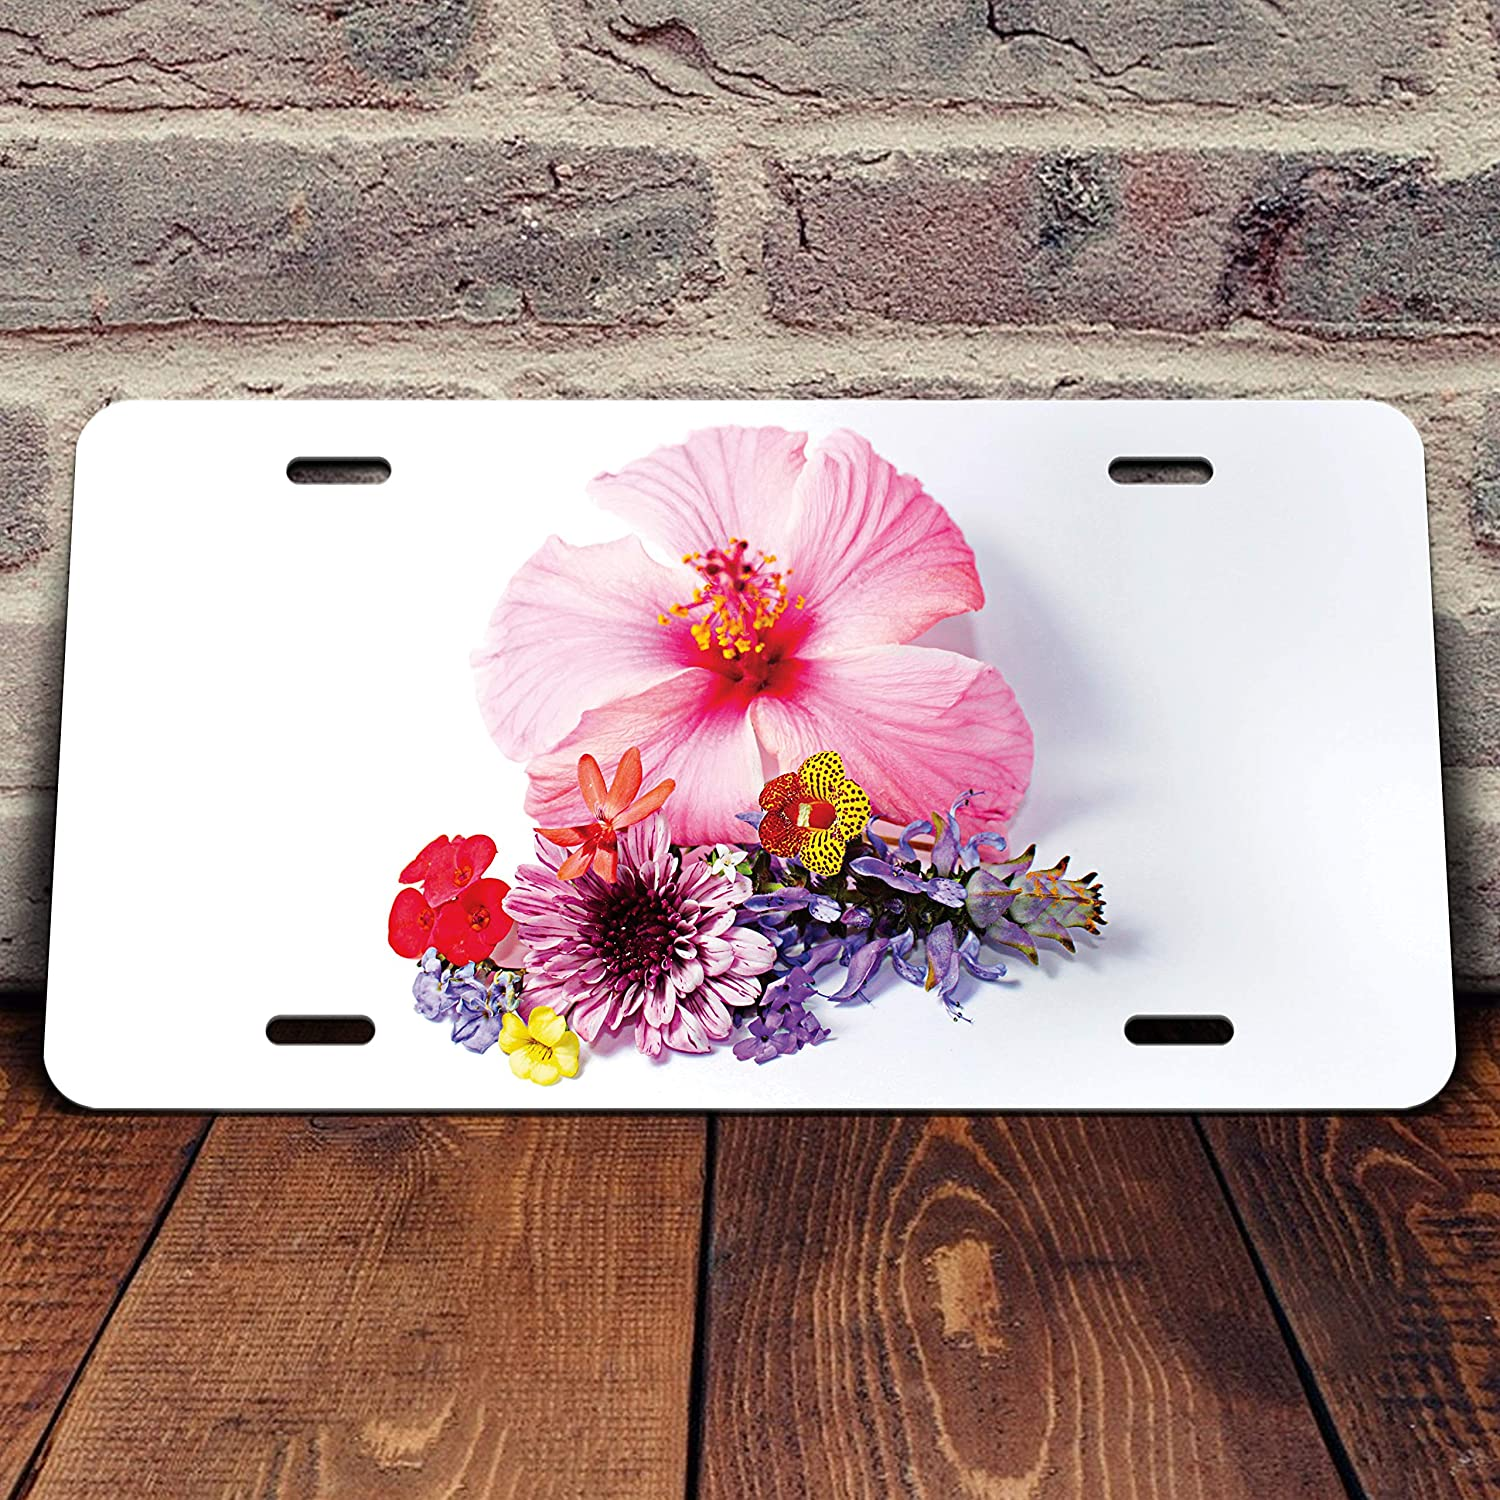 Hibicus Flower with Bouquet Vanity Front License Plate Tag Printed Full Color KCFP070 KCD